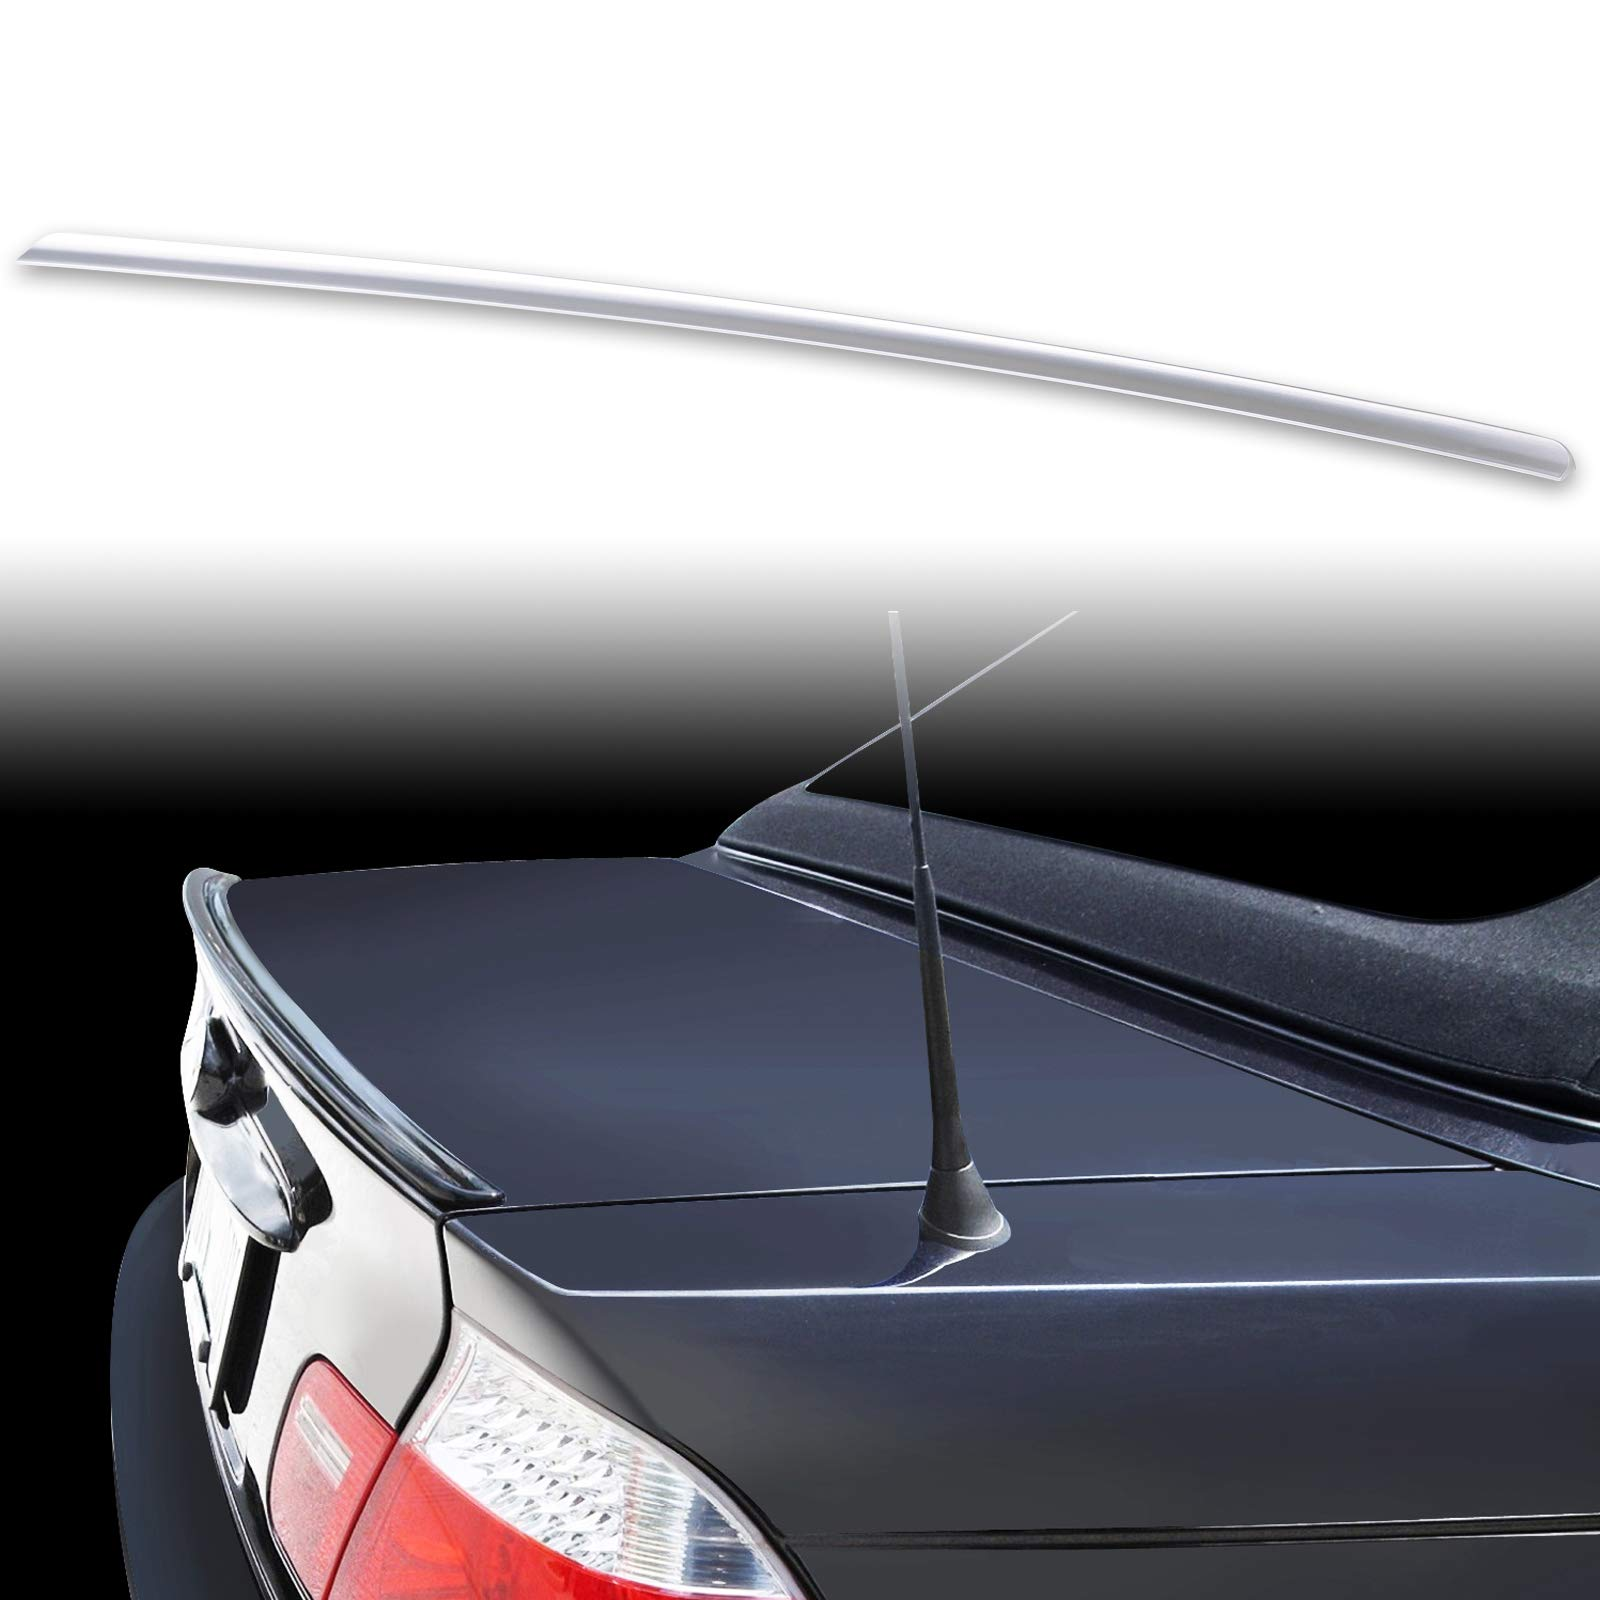 FYRALIP Painted Factory Print Code Trunk Lip Wing Spoiler For 2000-2006 BMW 3-Series E46 Convertible 2001-2006 E46 M3 Convertible Fast Delivery Easy Installation Perfect Fit- 416 Carbon Black Metallic